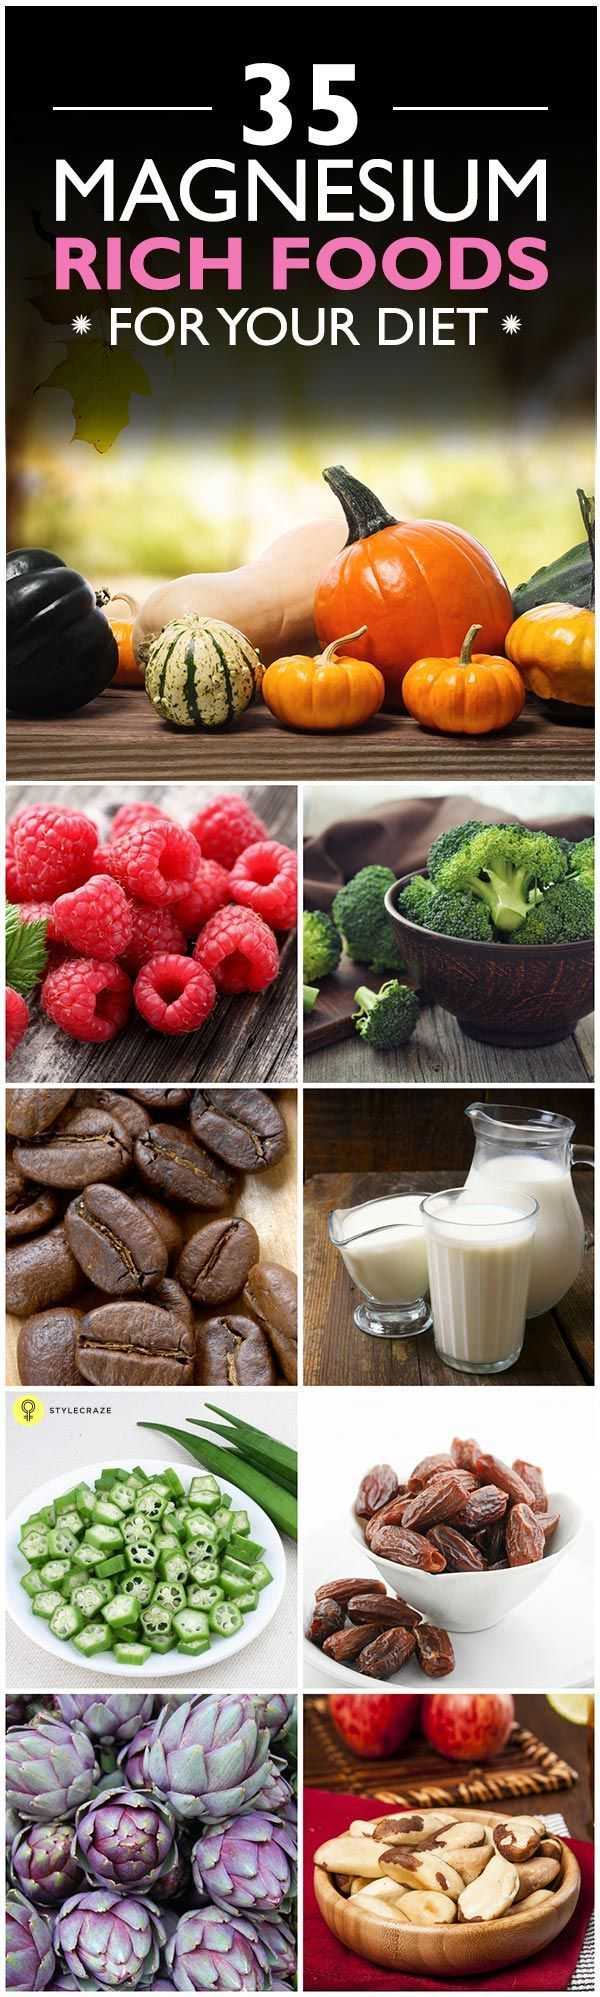 Did you know that deficiency of magnesium can lead to several health ...Here are top 35 Magnesium Ri